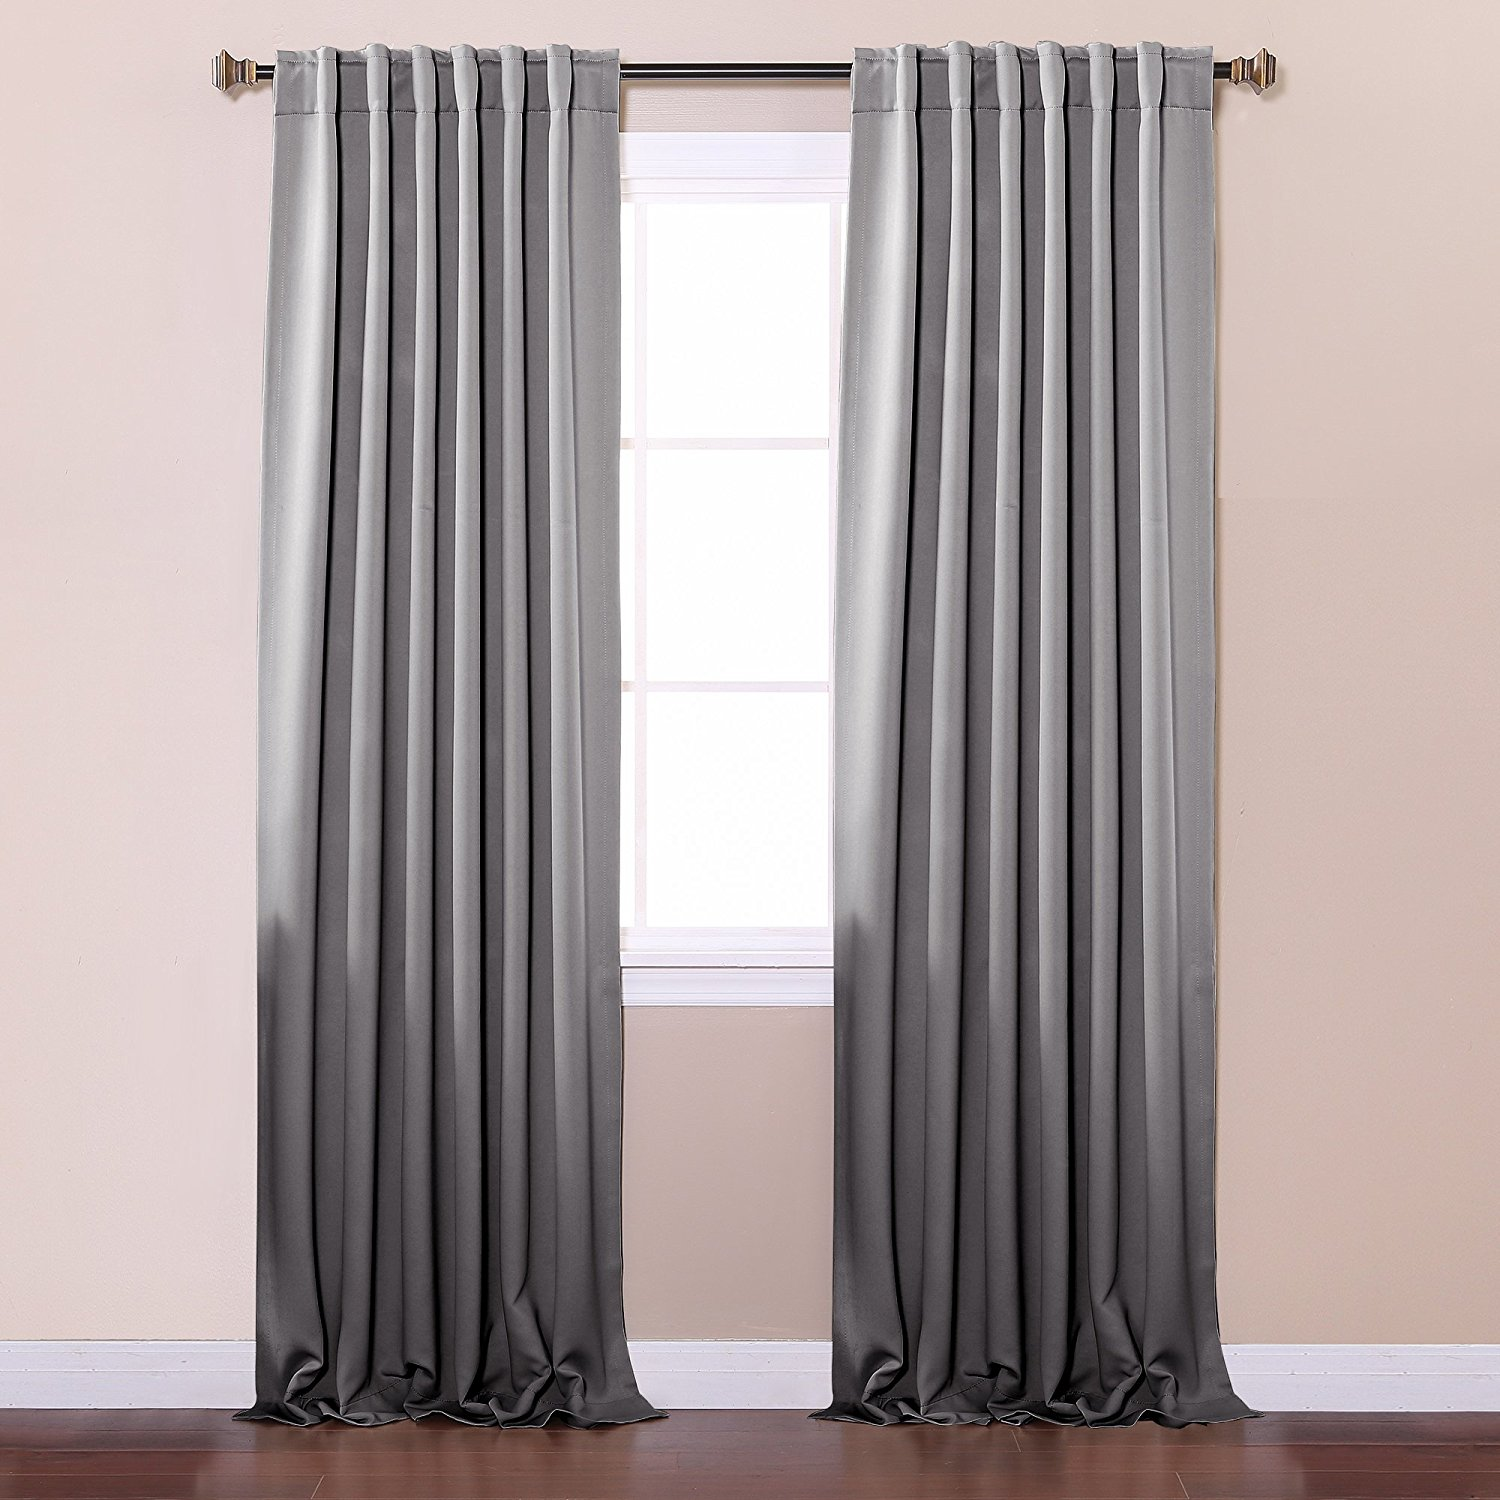 Curtains Thermal Blackout | White Darkening Curtains | Cheap Blackout Curtains